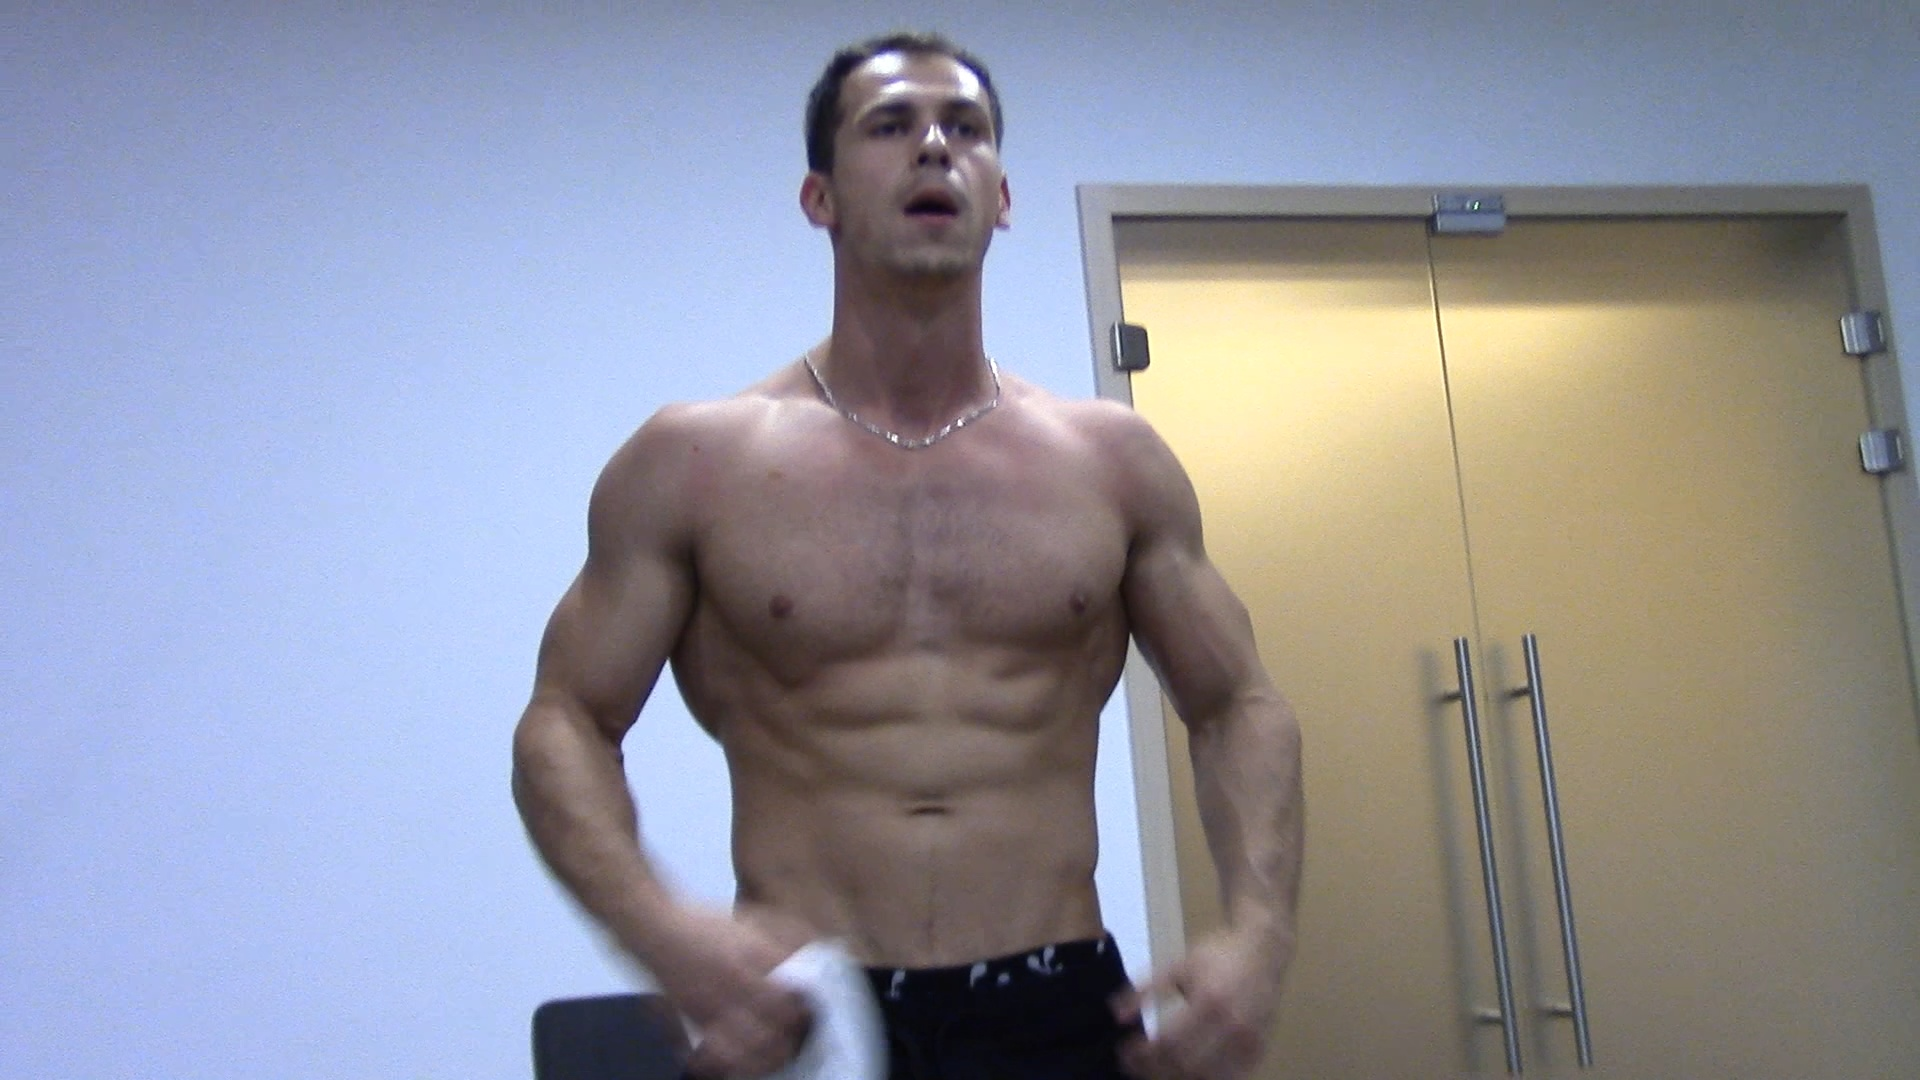 Posing & Training In The Gym